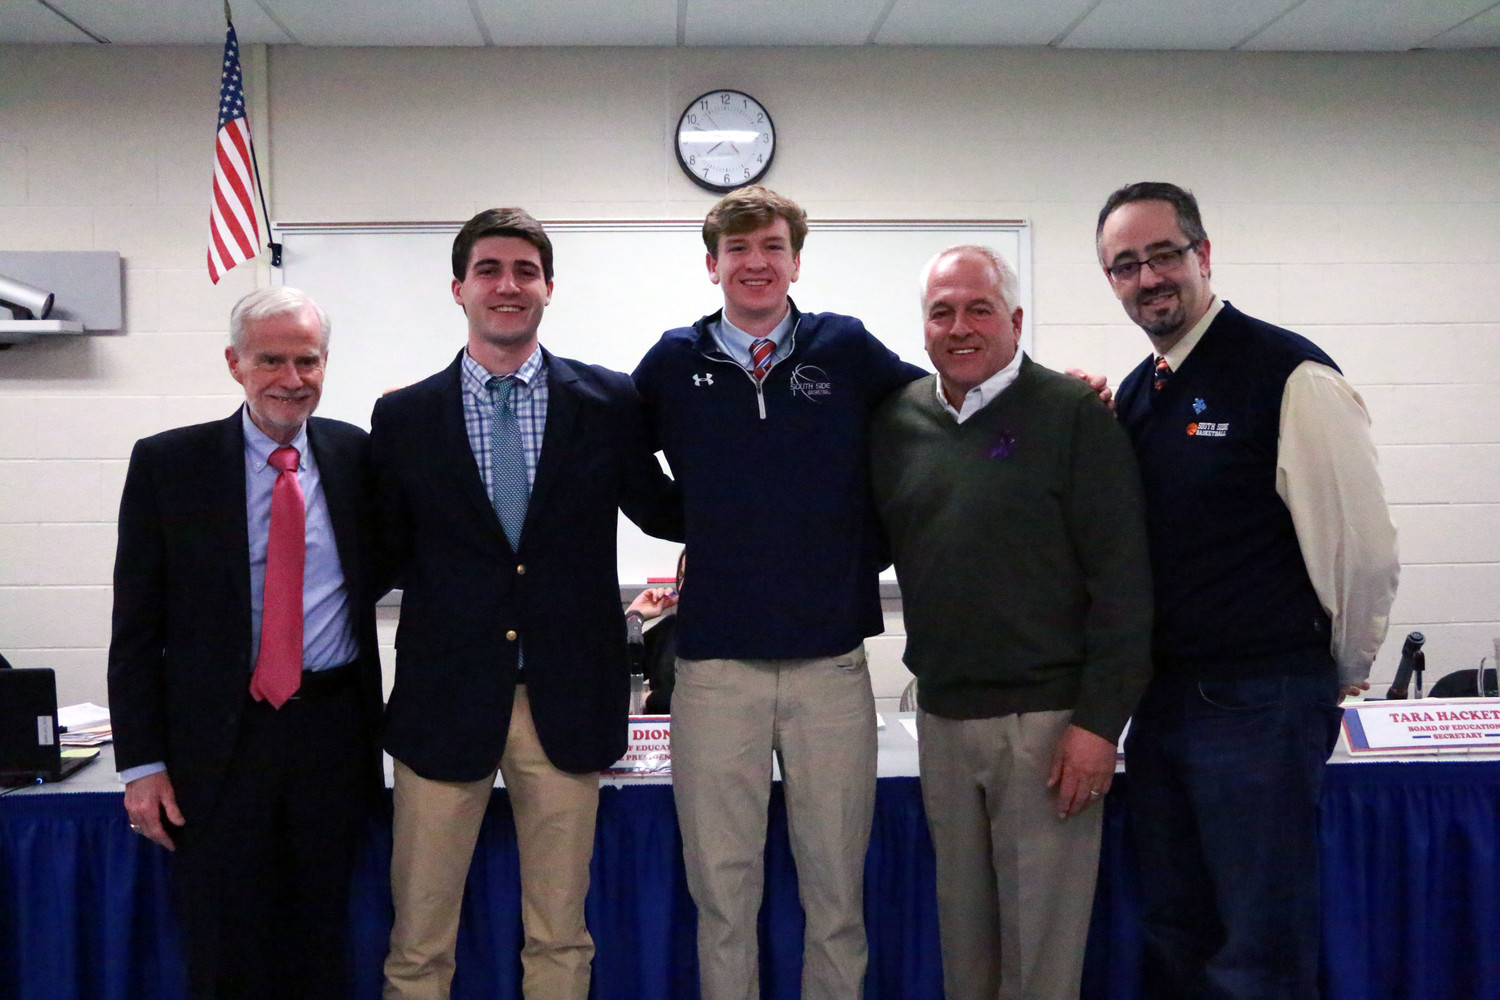 Matthew Trencheny, second from left, and teammate Ryan O'Shea, earned All-County honors this season. They joined their coach Jerry D'Angelo, right, Schools Superintendent Dr. William Johnson, far left, and Board of Education President John O'Shea during a school board meeting on March 14.